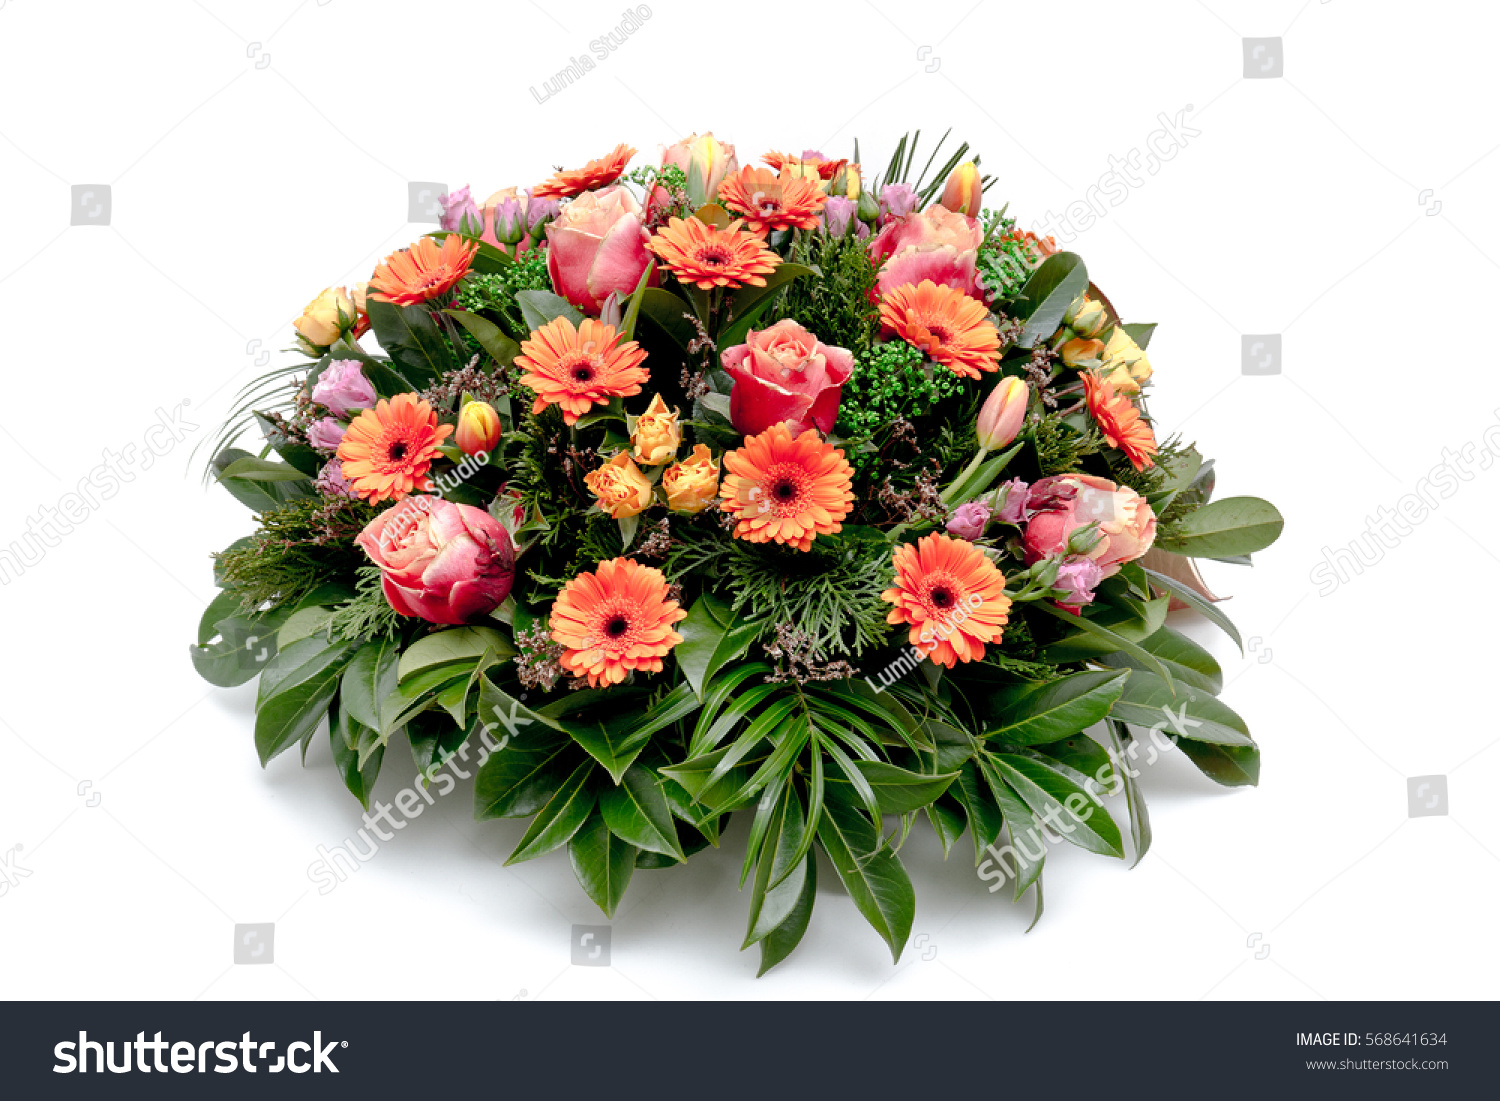 Funeral flower wreath ikebana isolated on a white background ez canvas izmirmasajfo